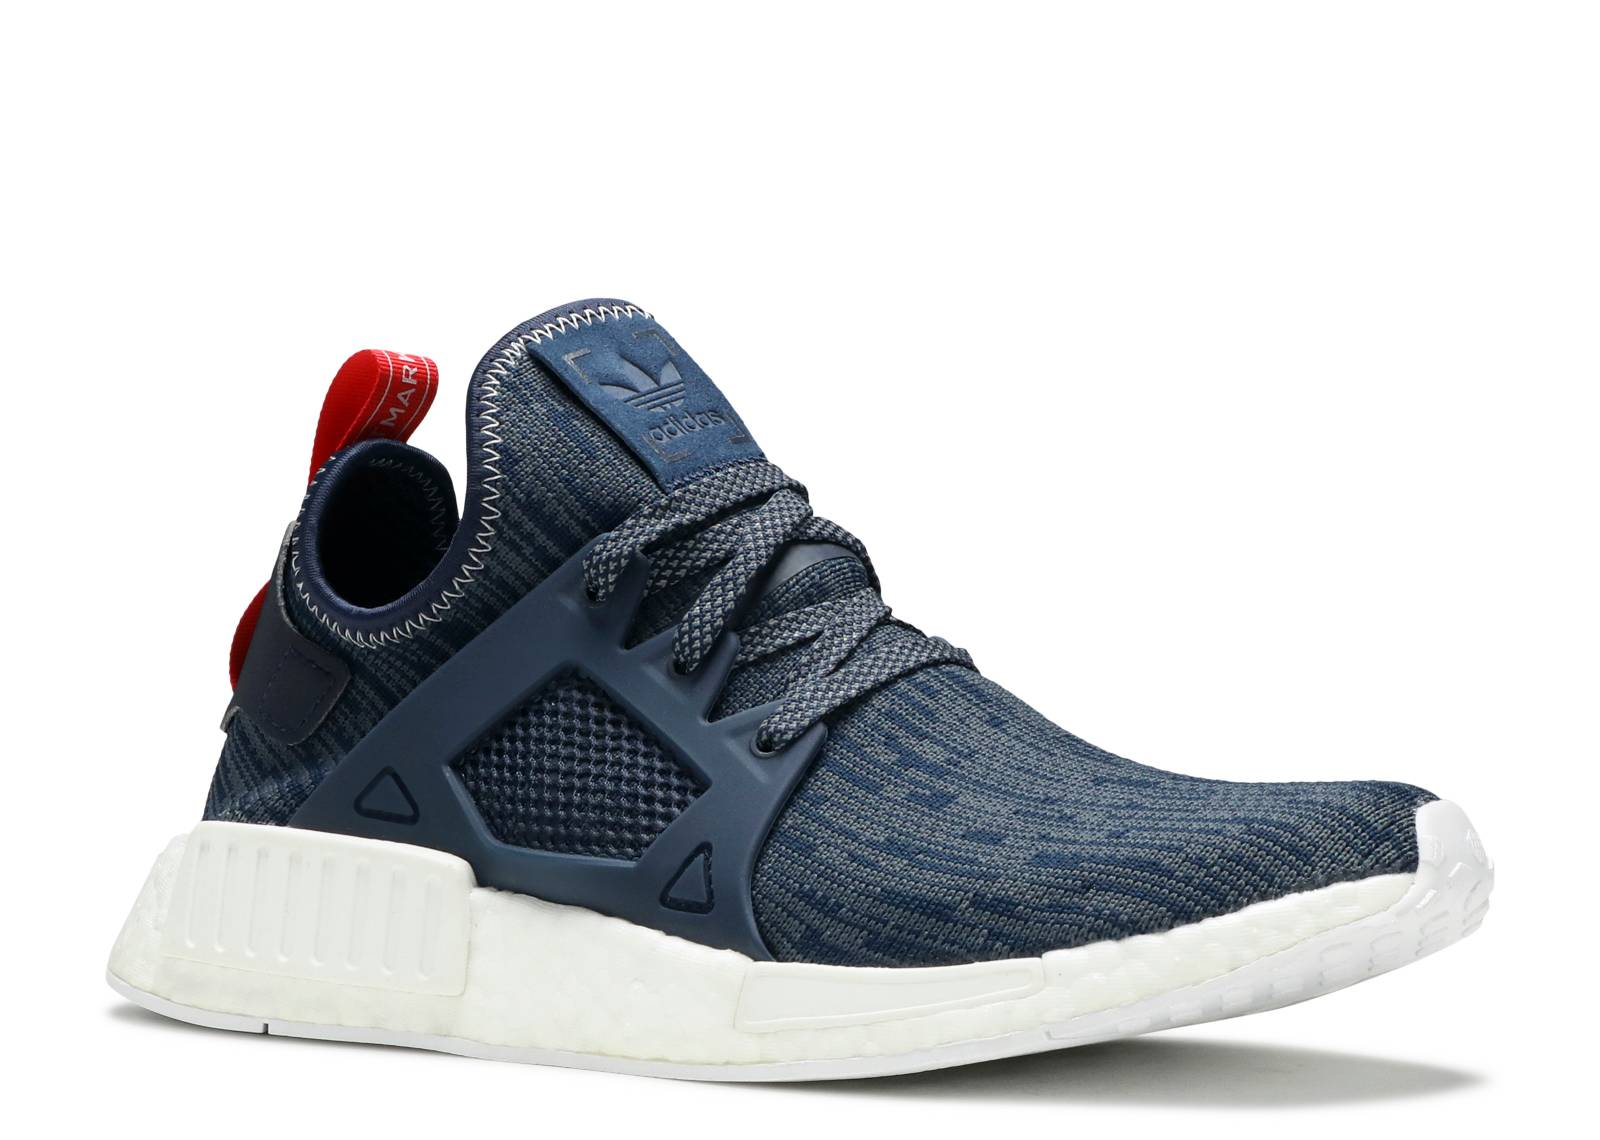 Adidas Nmd Xr1 Red And Blue